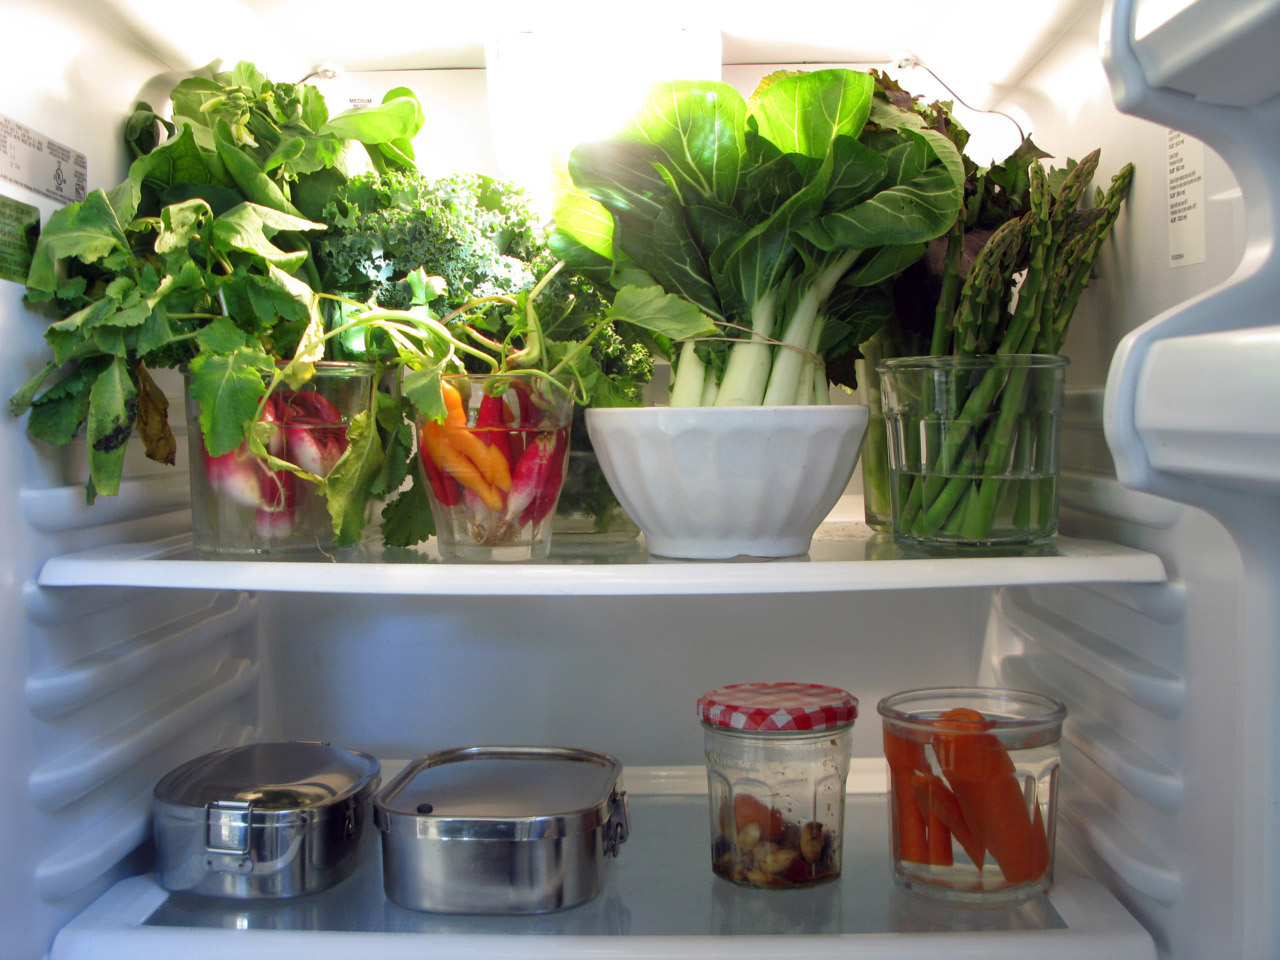 Building a Healthy Kitchen